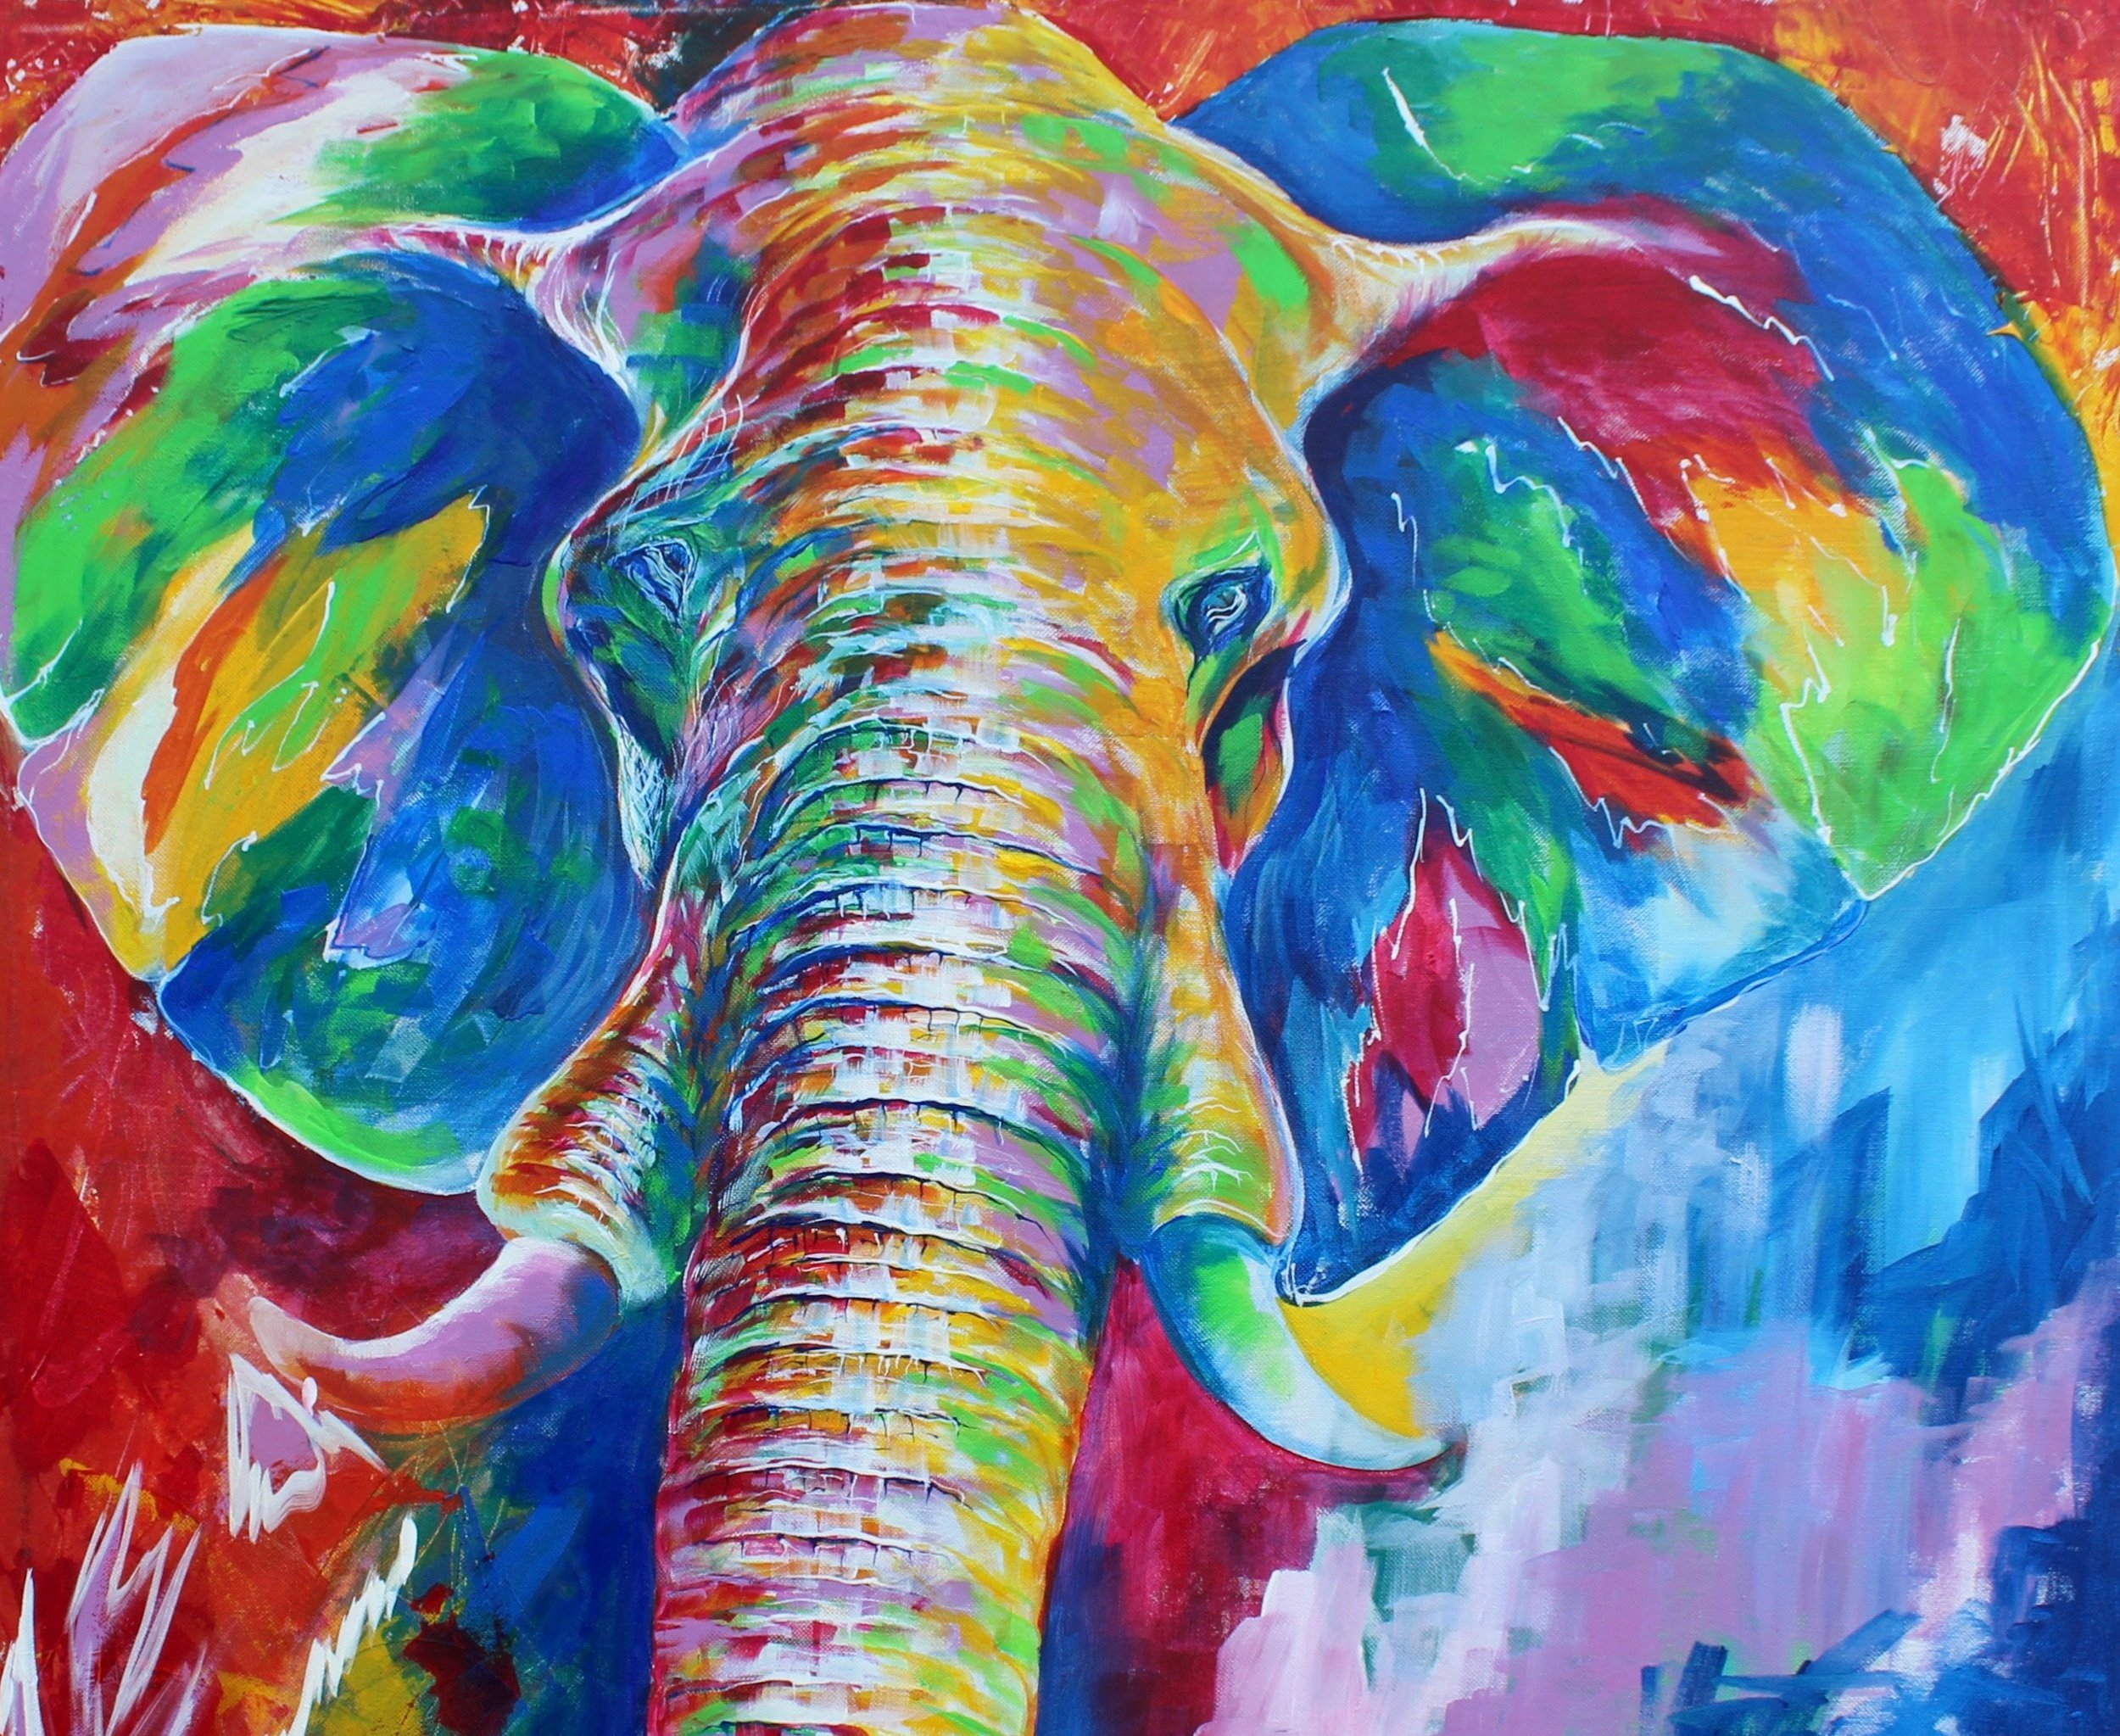 Colourful elephant - Josphat copy.jpg